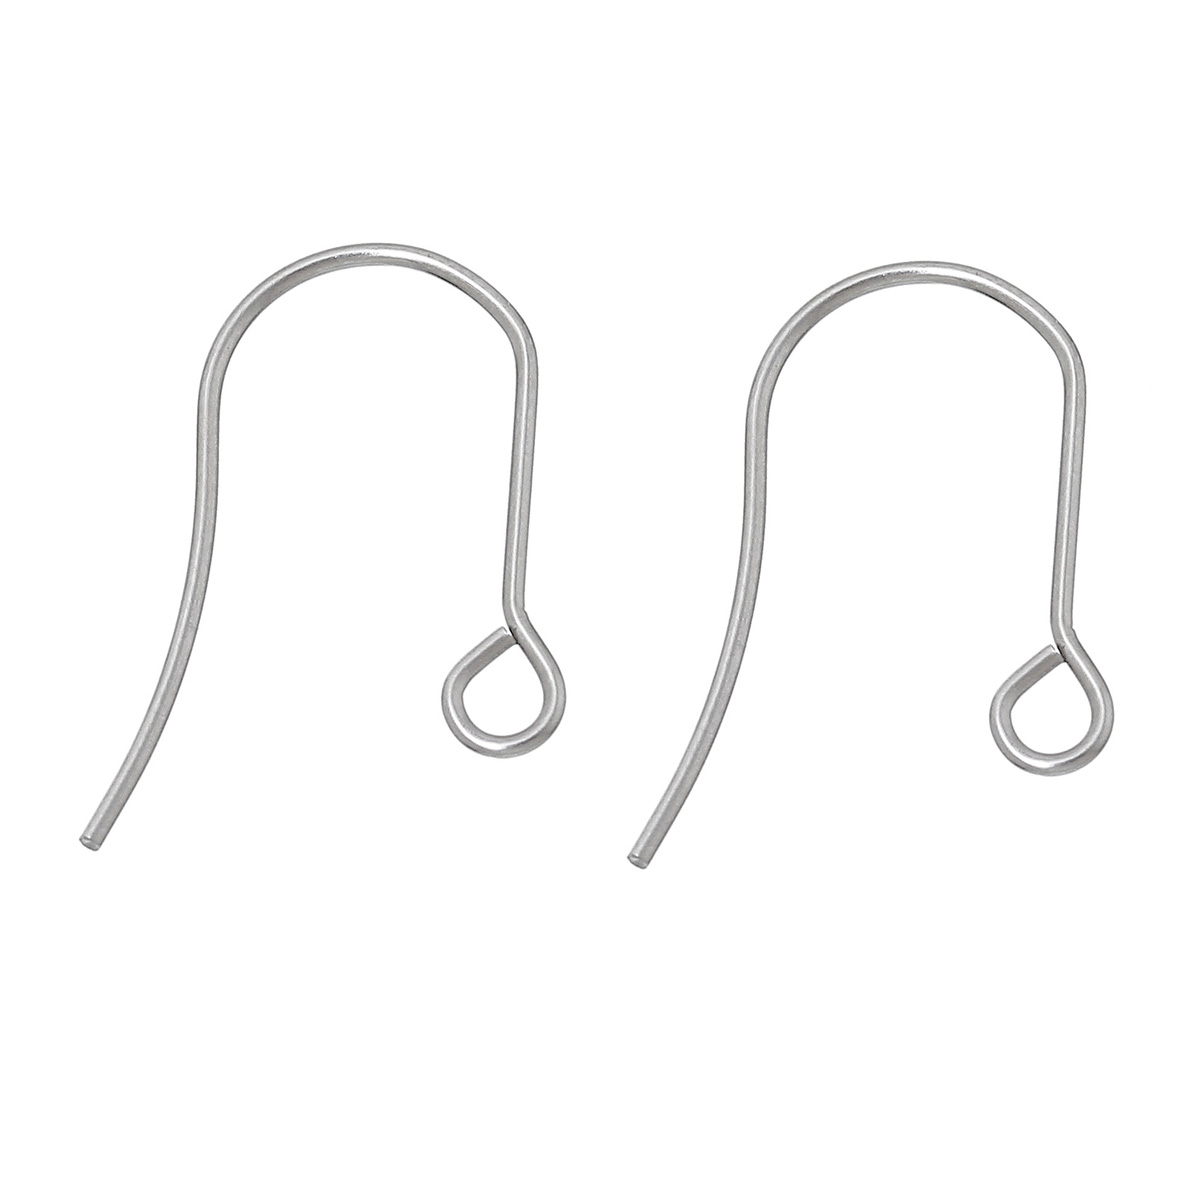 Doreenbeads Stainless Steel Ear Wire Hooks Earring Findings U Shaped Dull Silver Color 19mm 6 8